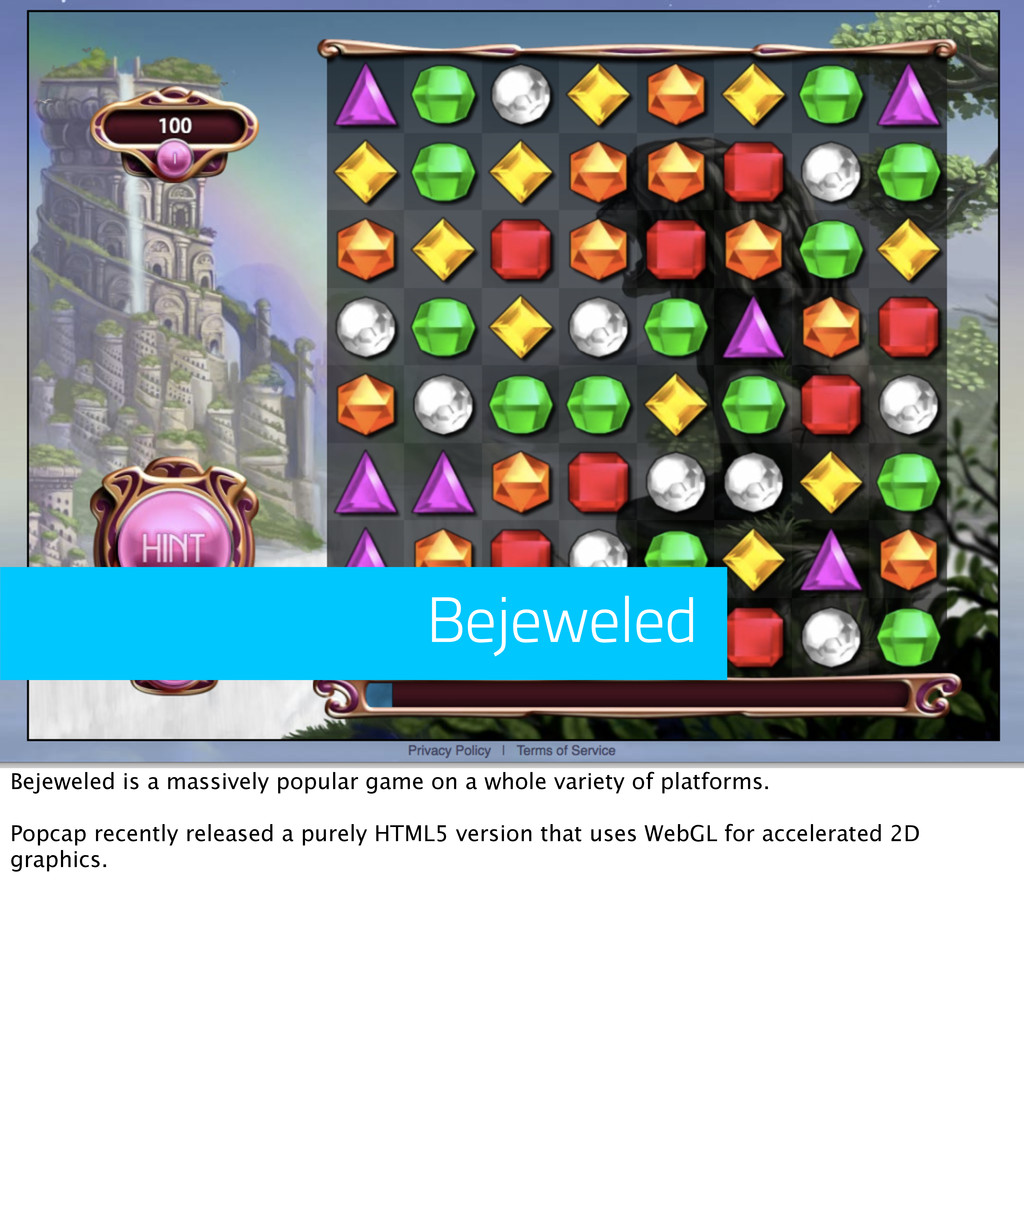 Bejeweled Bejeweled is a massively popular game...